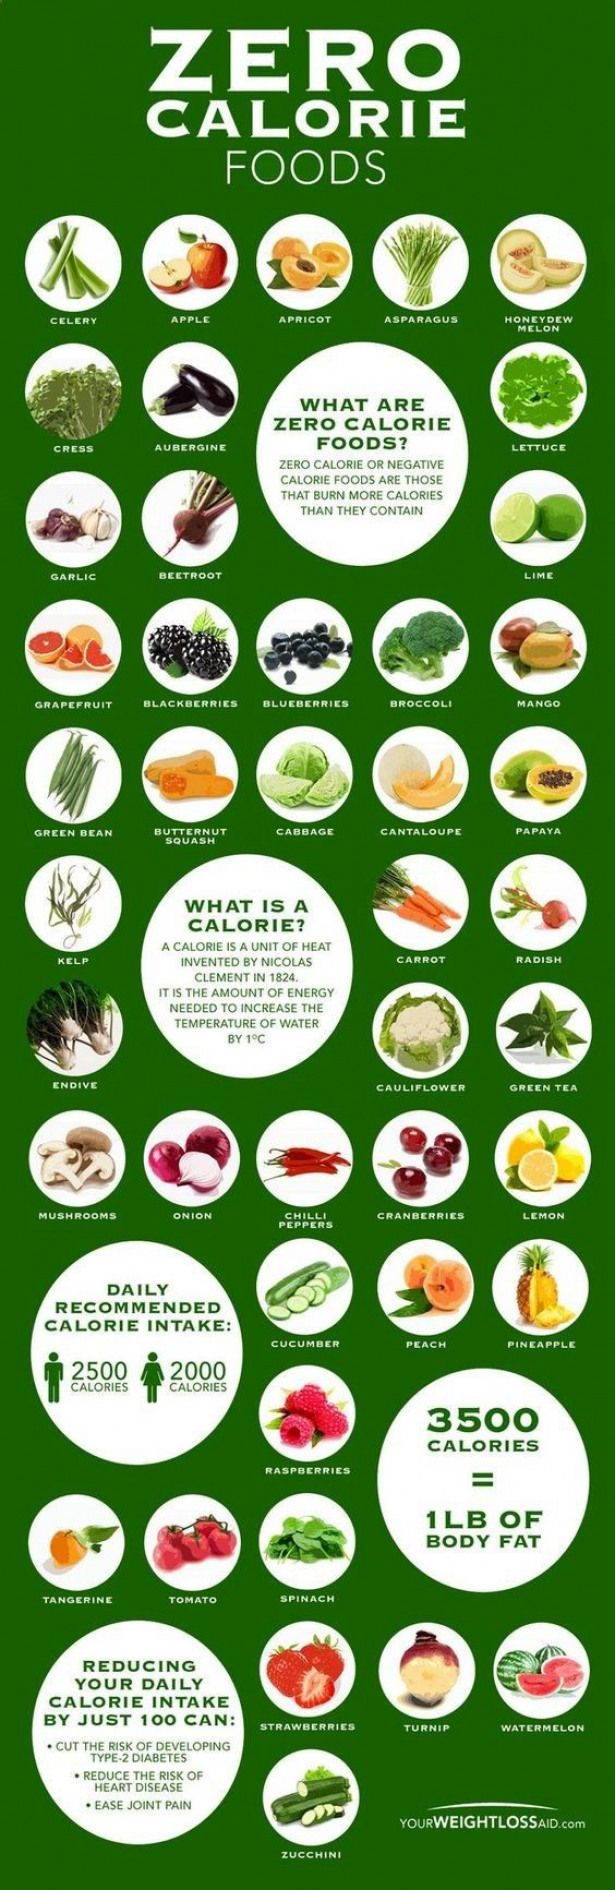 Zero calorie food chart topic diet weight loss paleo nutrition fruits vegetables vegetarian healthy eating also rh pinterest